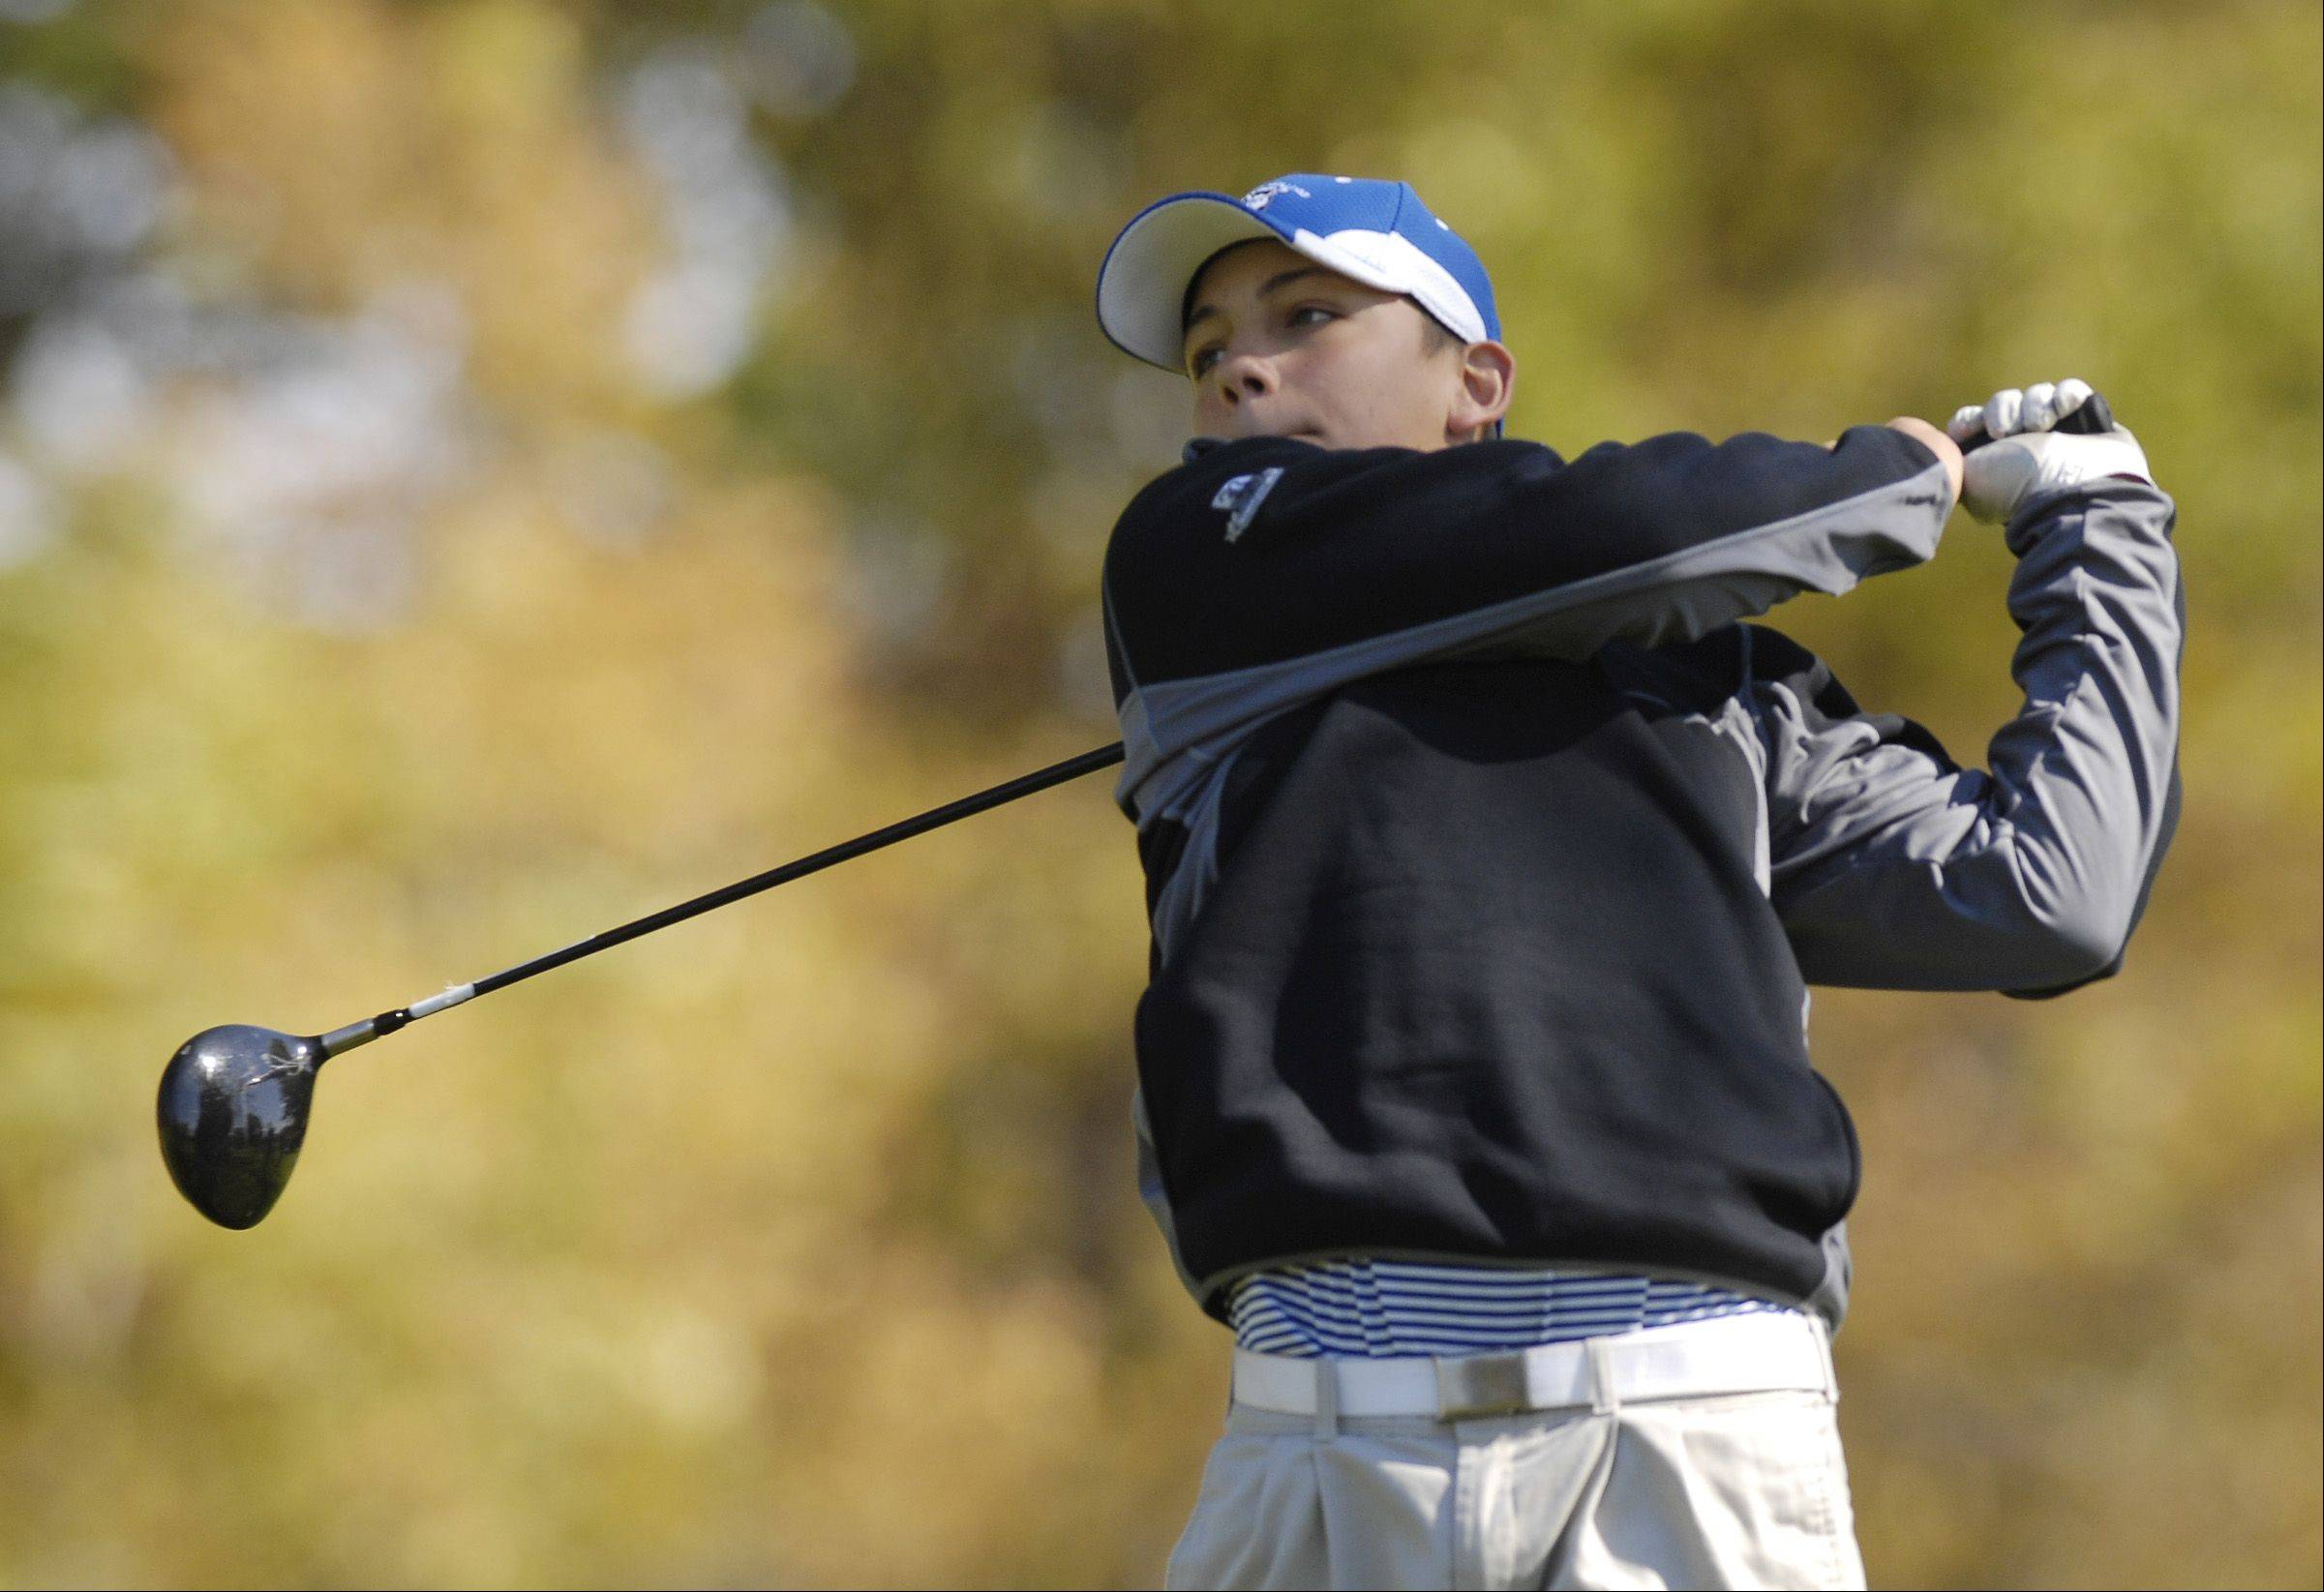 Dan Lenz of Larkin tees off during the St. Charles East boys varsity golf sectional at St. Andrews Golf Club in West Chicago, Monday.